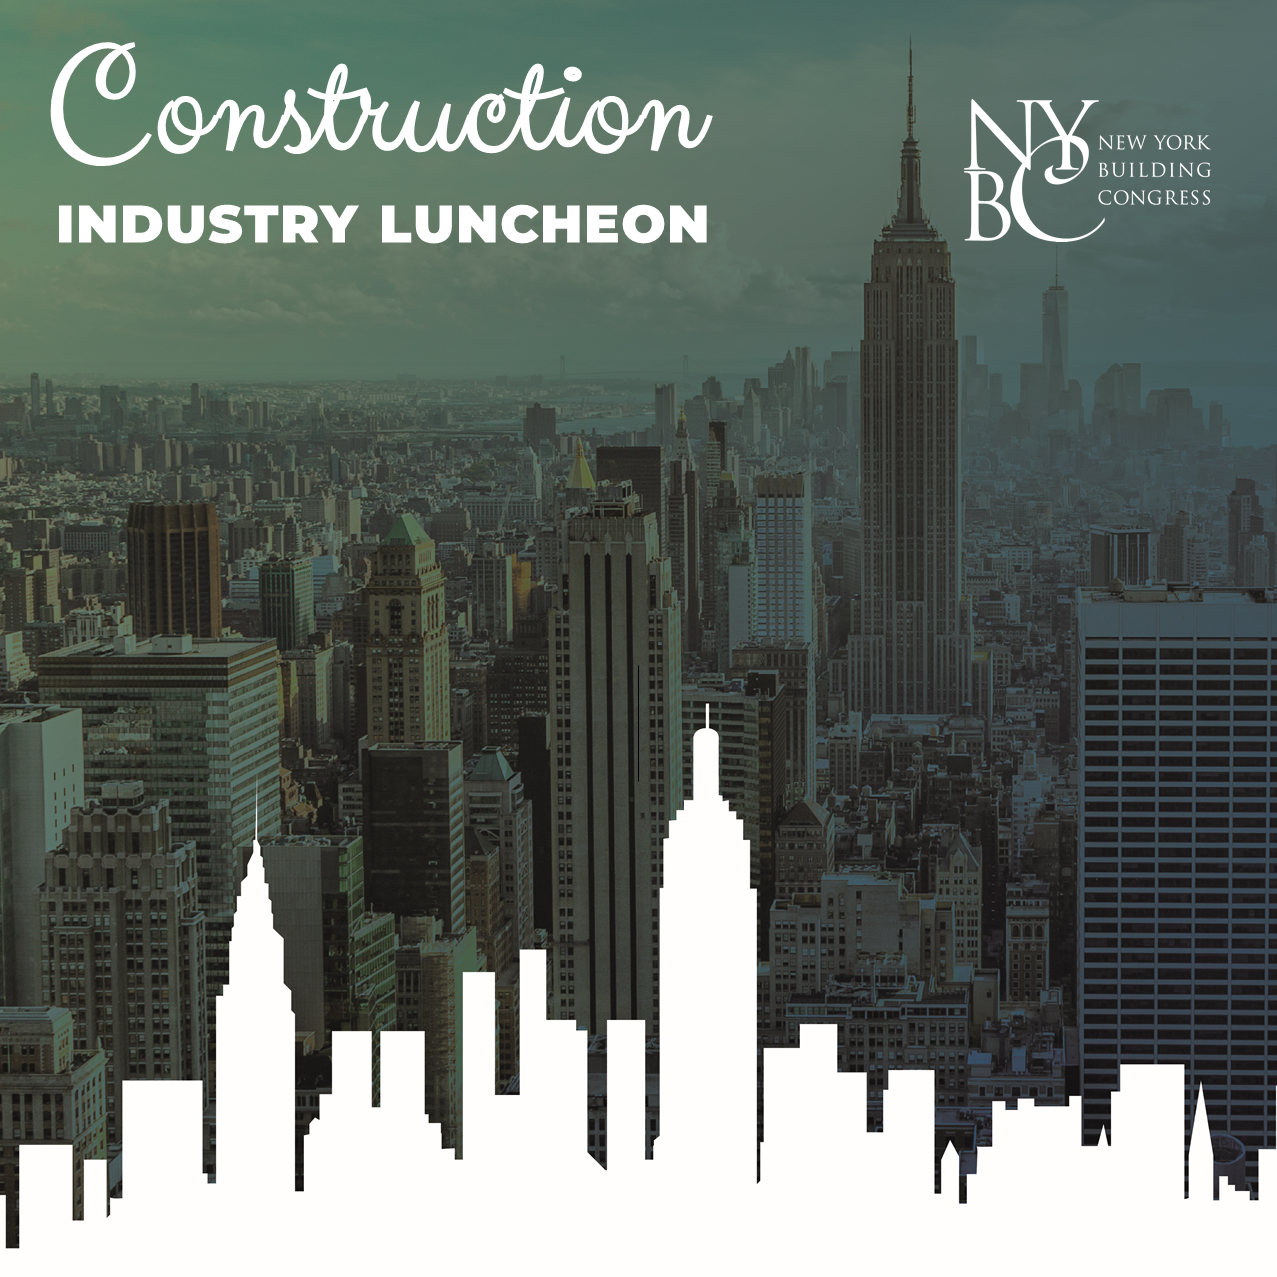 Nyc Calendar Of Events 2020 Event Calendar | New York Building Congress